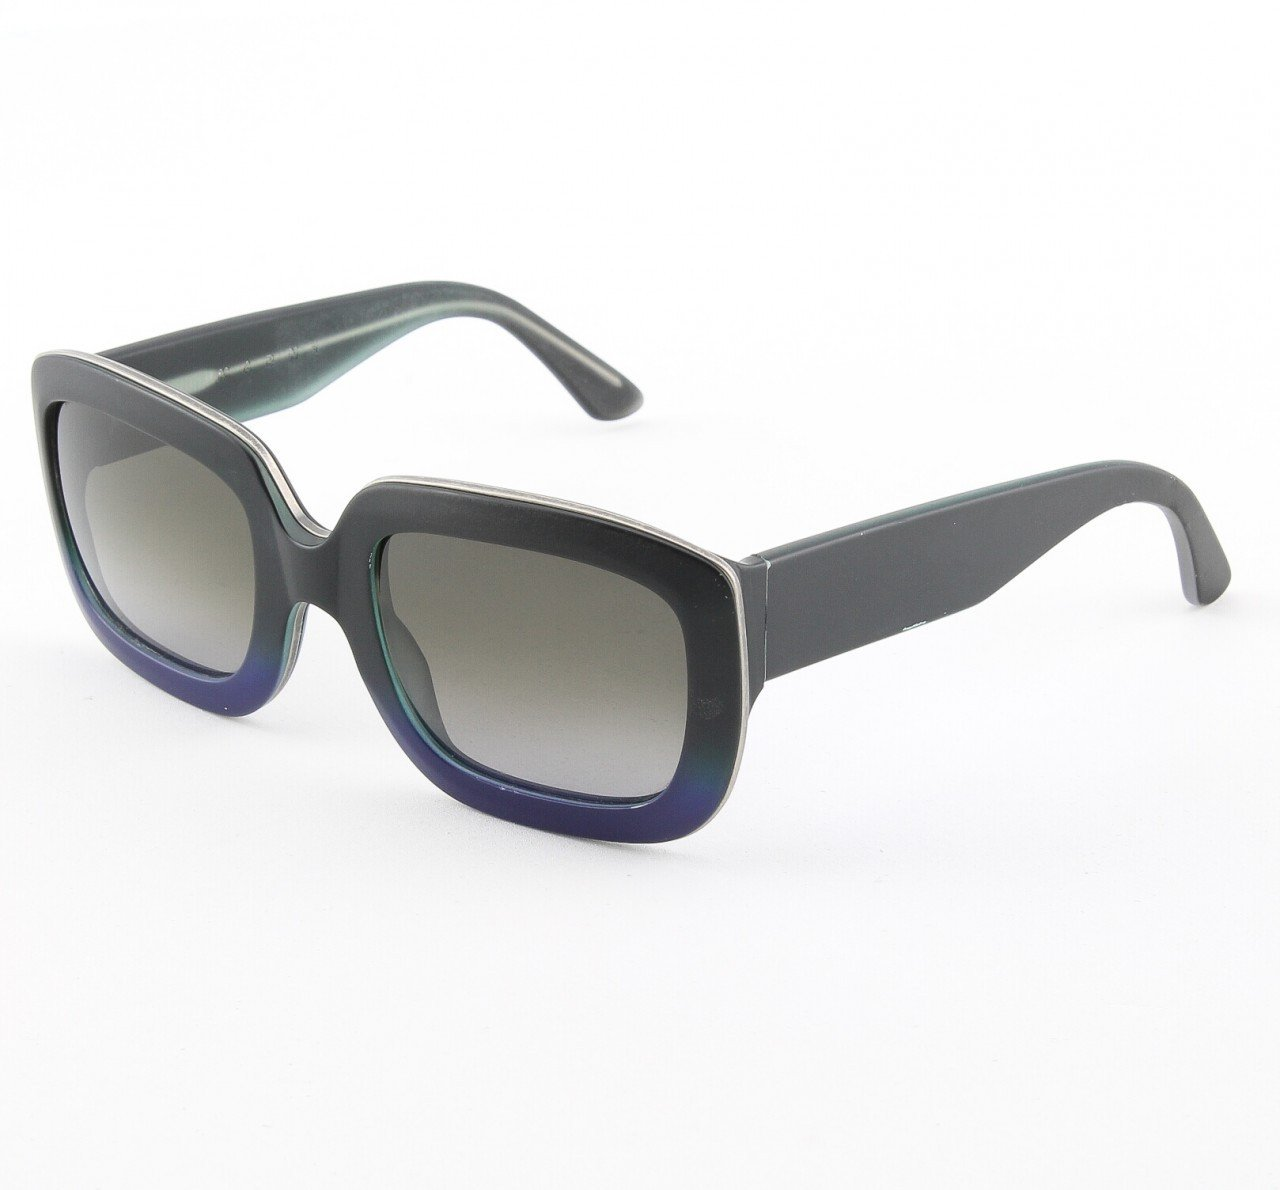 Marni MA142 Sunglasses Col. 11 Dark Charcoal Deep Violet with Gray Gradient Lenses